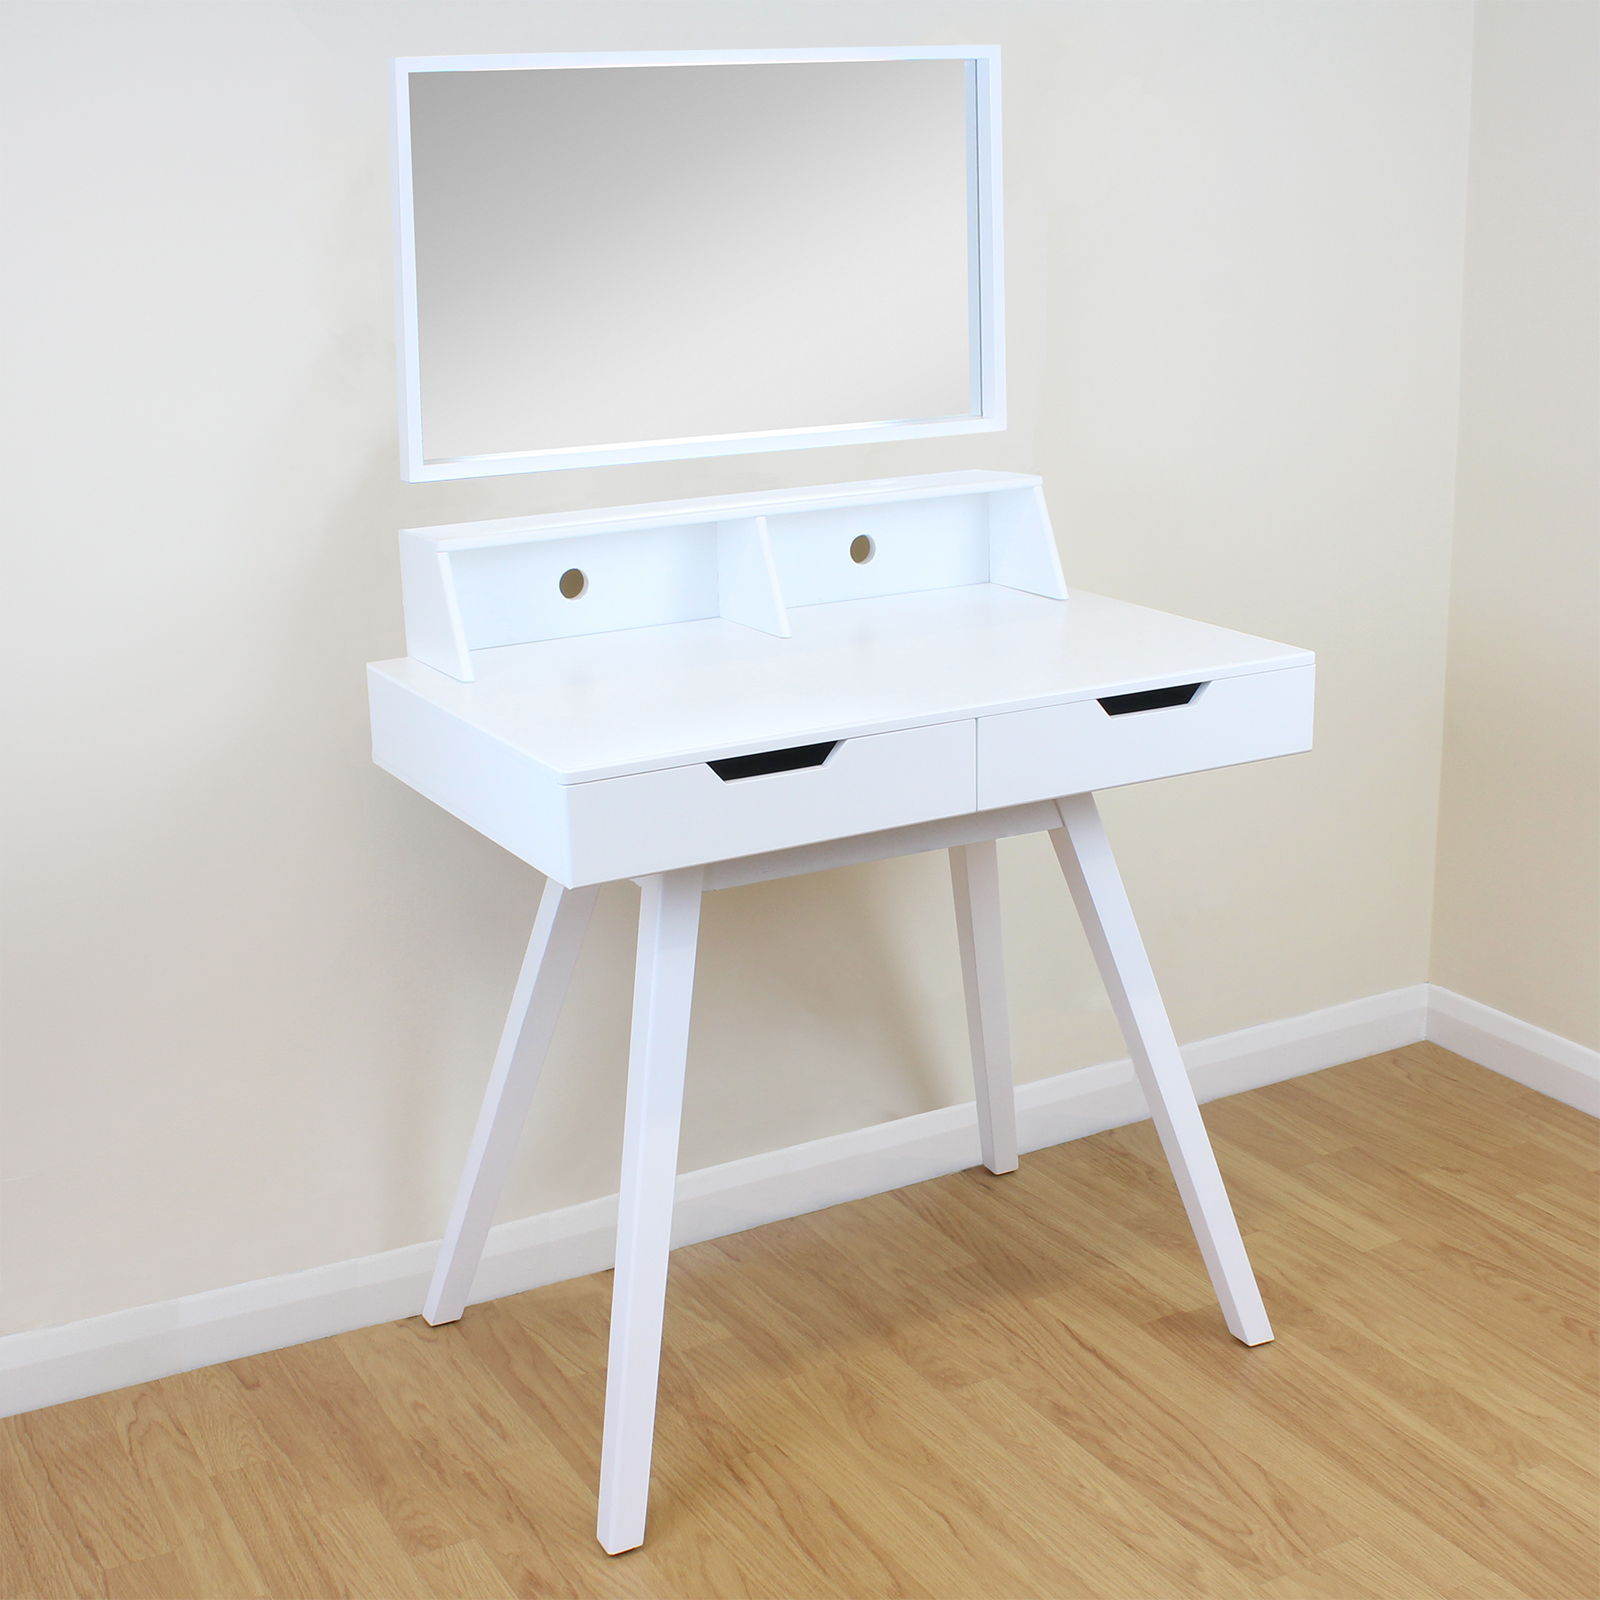 2 Drawer White Vanity/Makeup/Dressing Table Removable